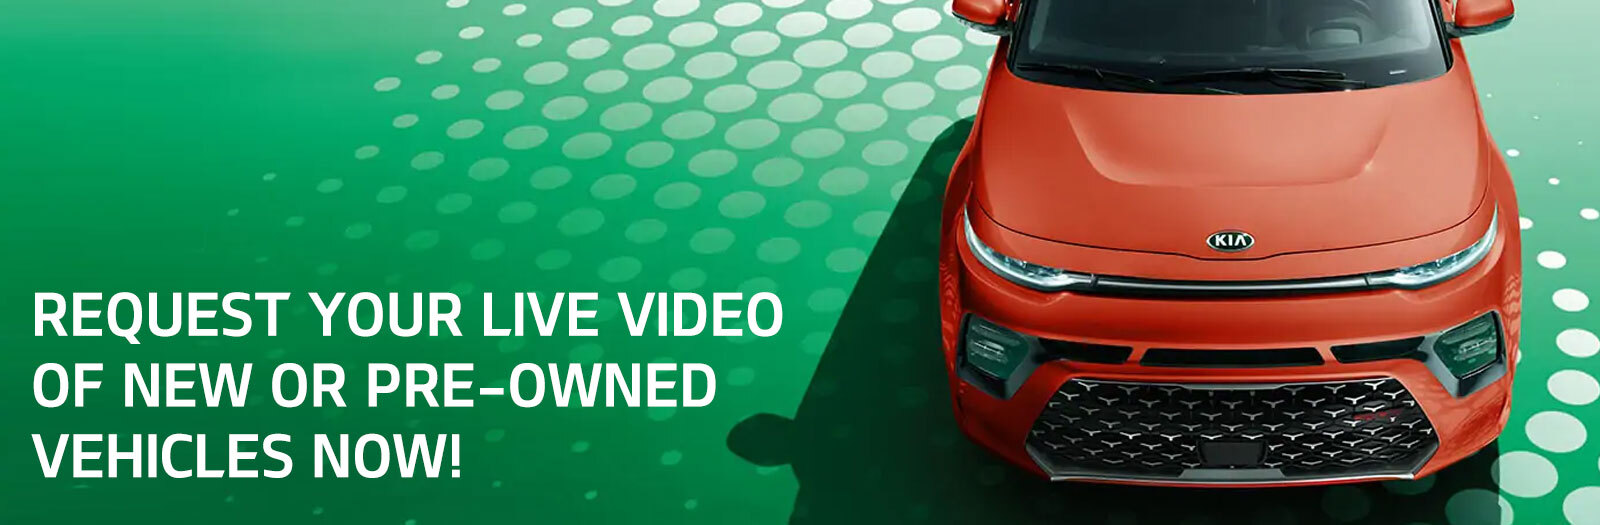 Request your Live Video of New or Pre-Owned Vehicles Now